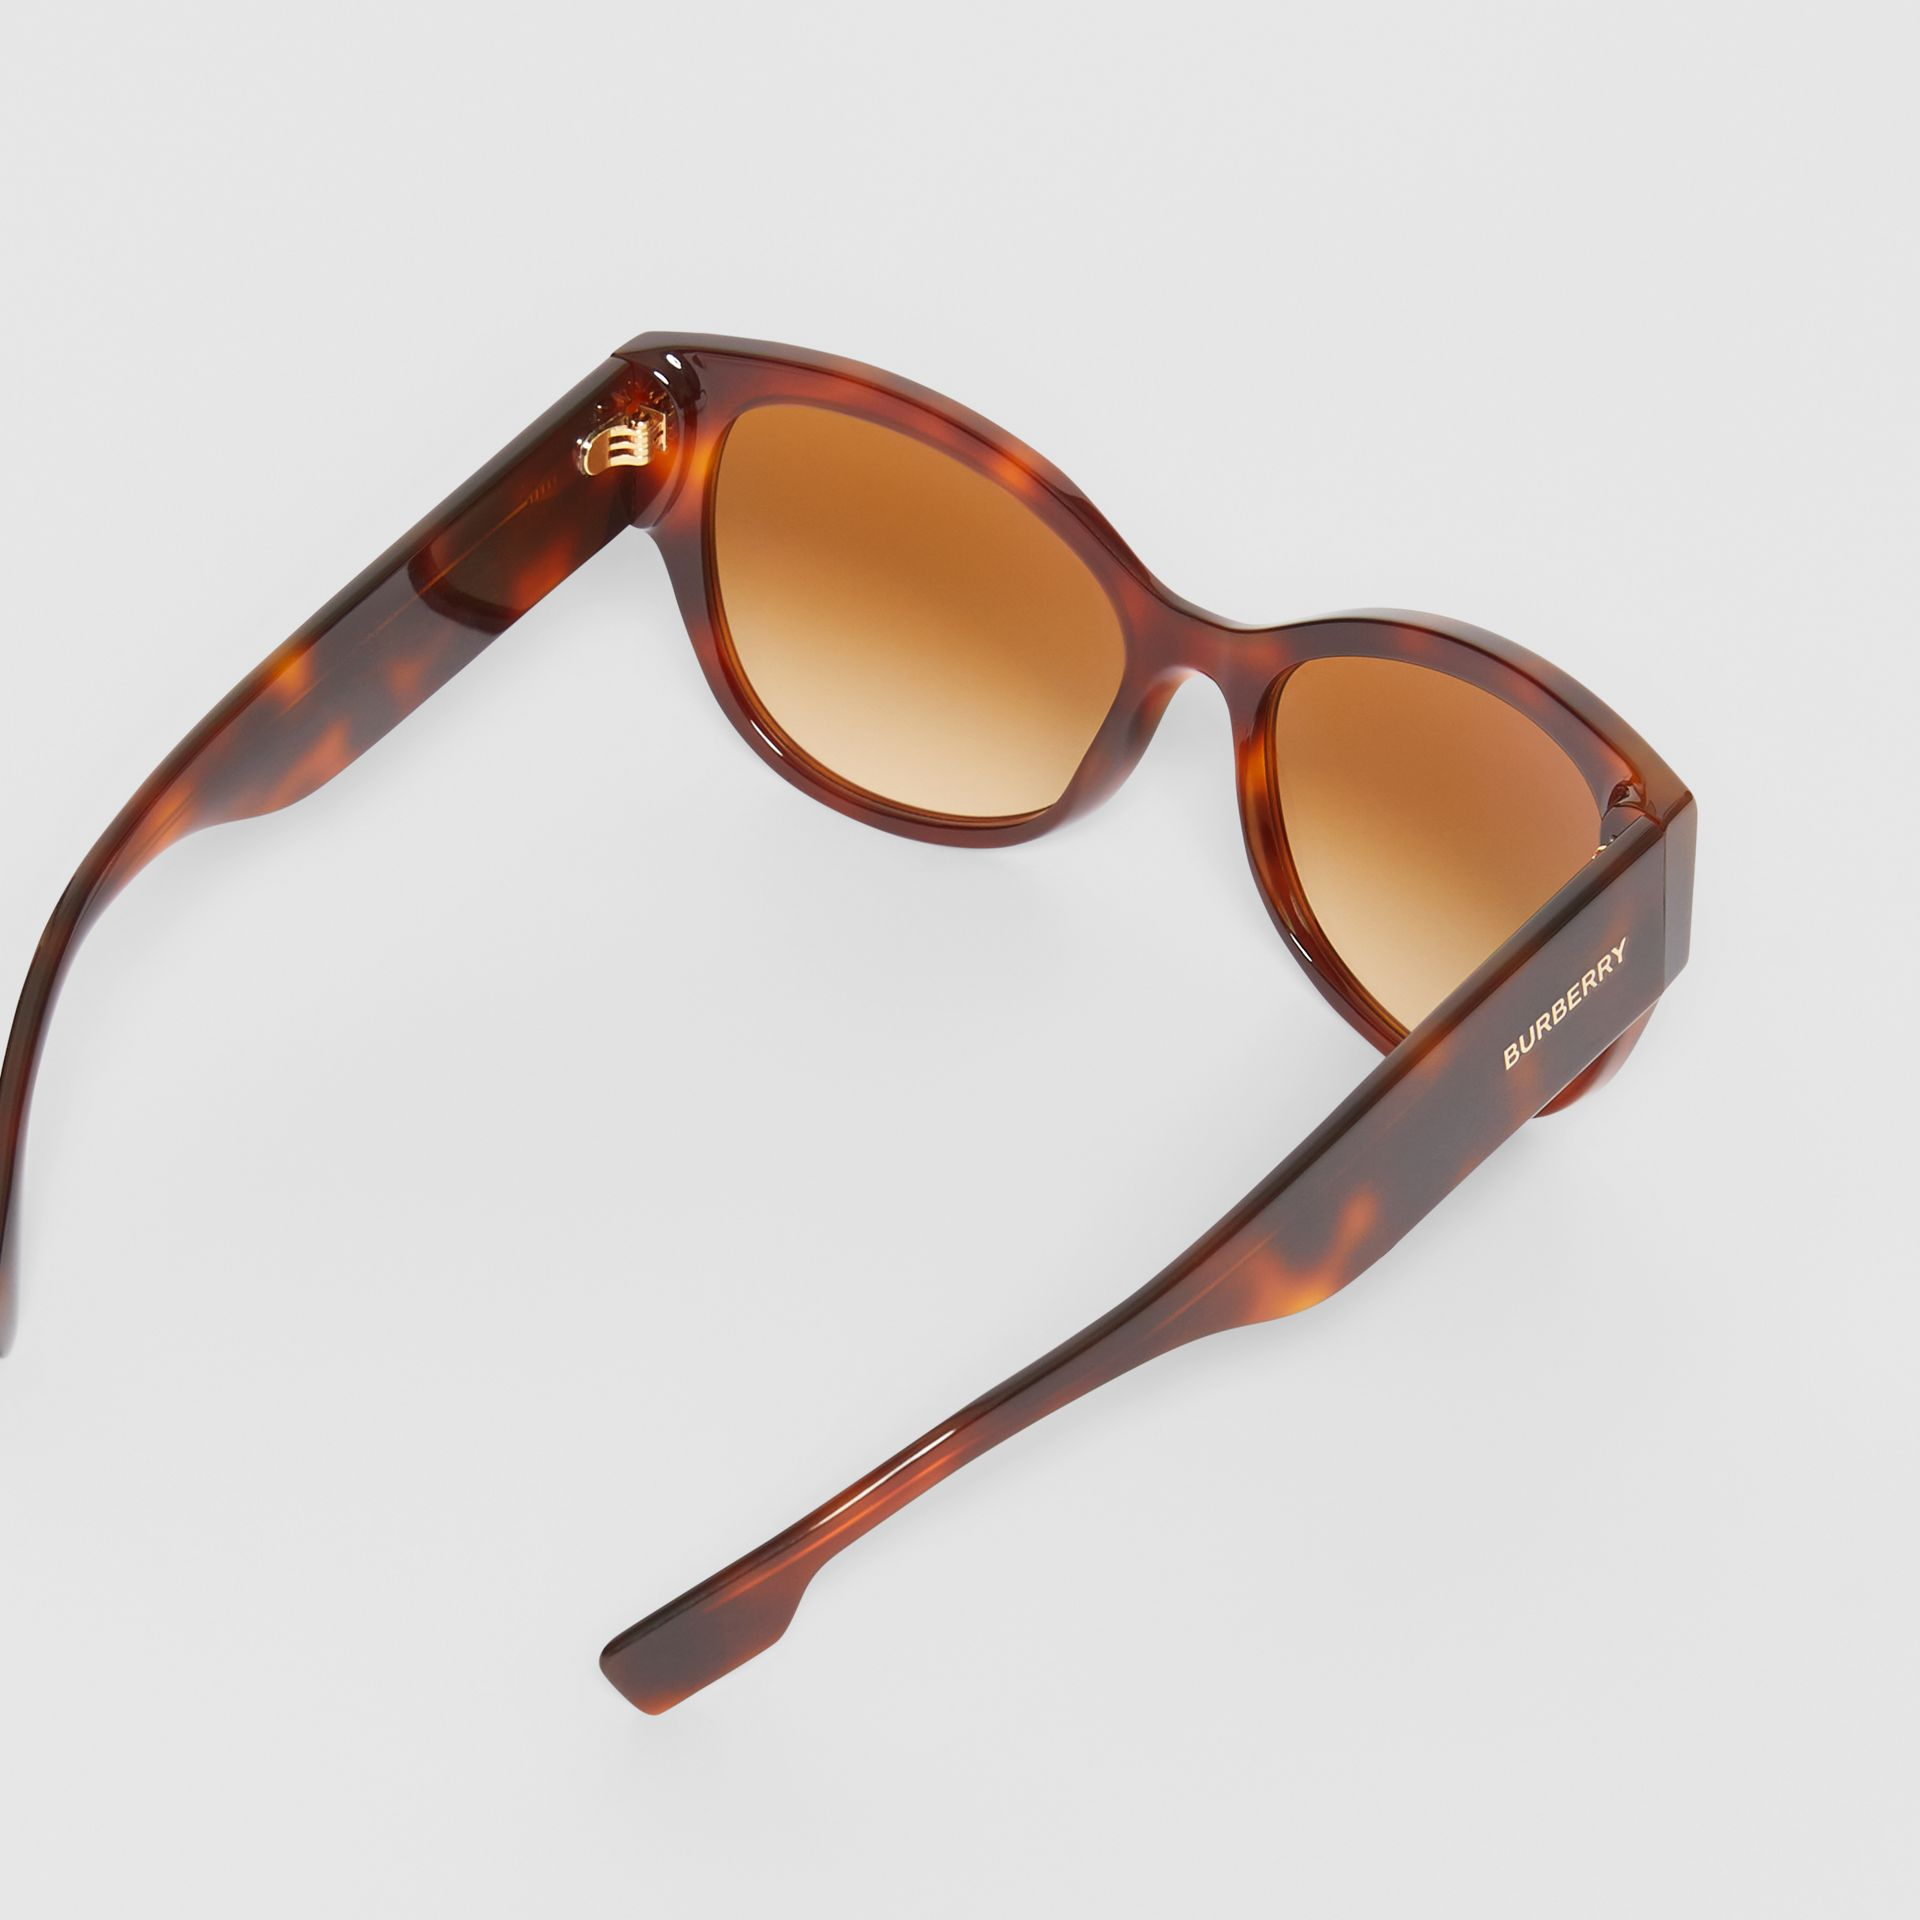 Butterfly Frame Sunglasses in Tortoise Amber - Women | Burberry - gallery image 4